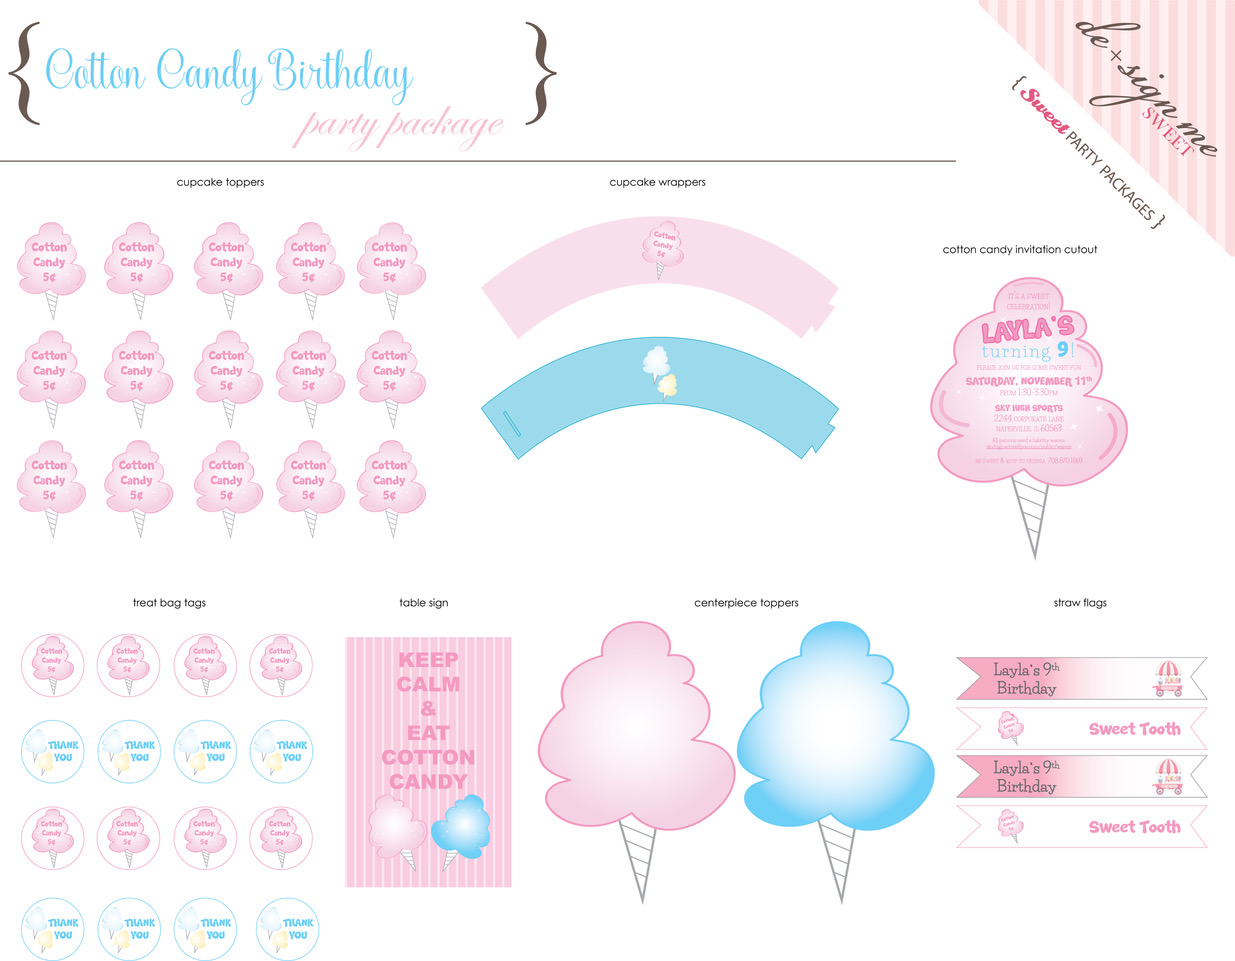 Cotton Candy Birthday